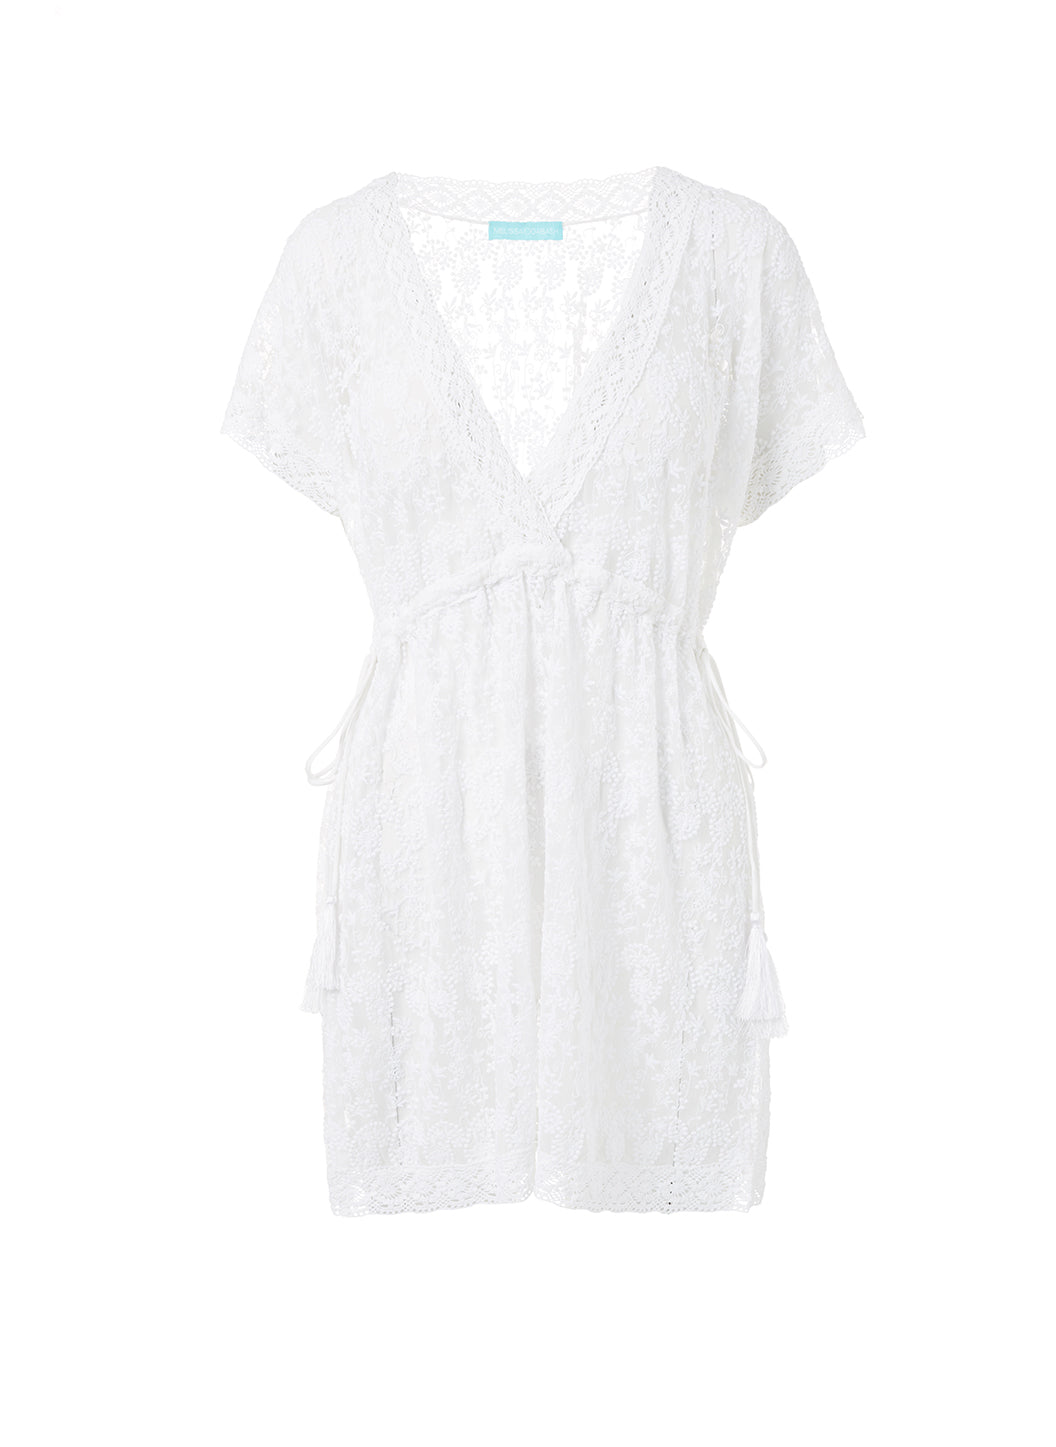 Adelina White Embroidered Short Tie-Side Beach Dress - Melissa Odabash Dresses & Kaftans